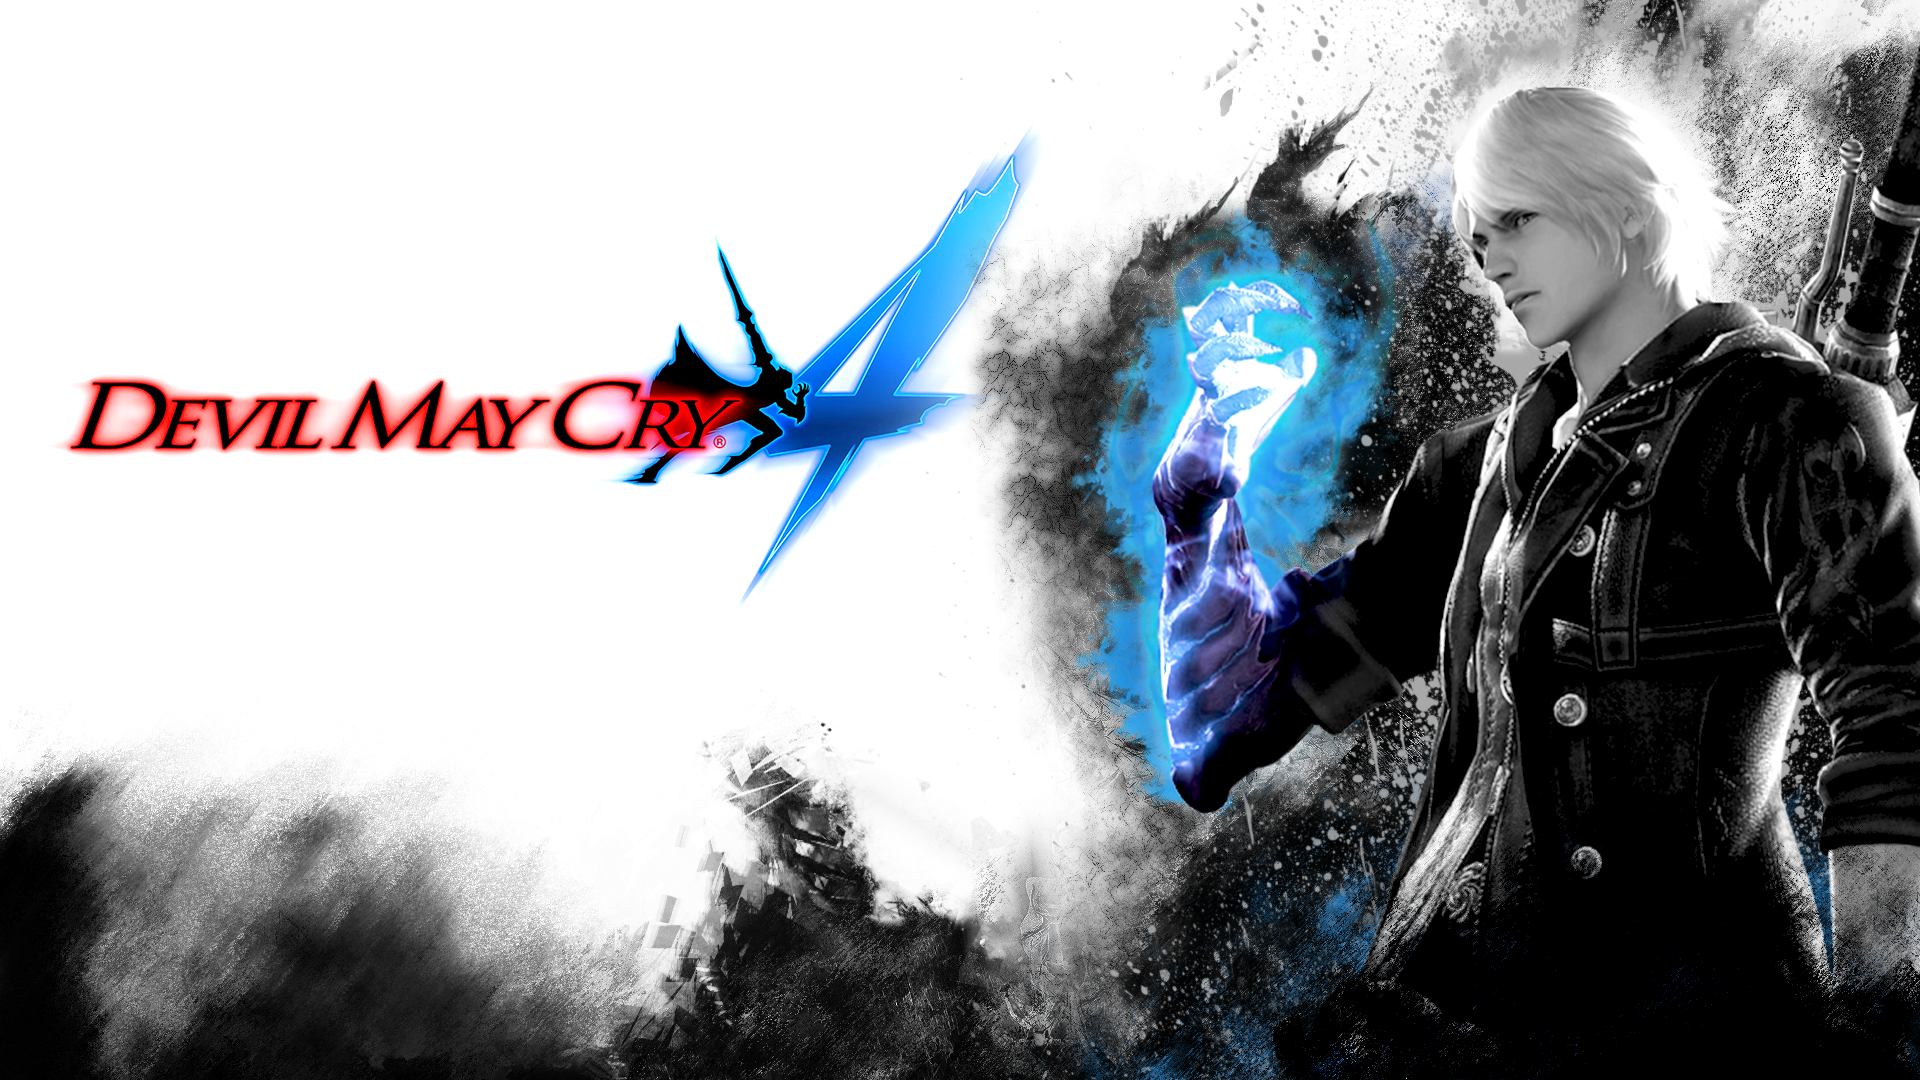 BROWSE devil may cry 4 screenshots  HD Photo Wallpaper Collection HD 1920x1080